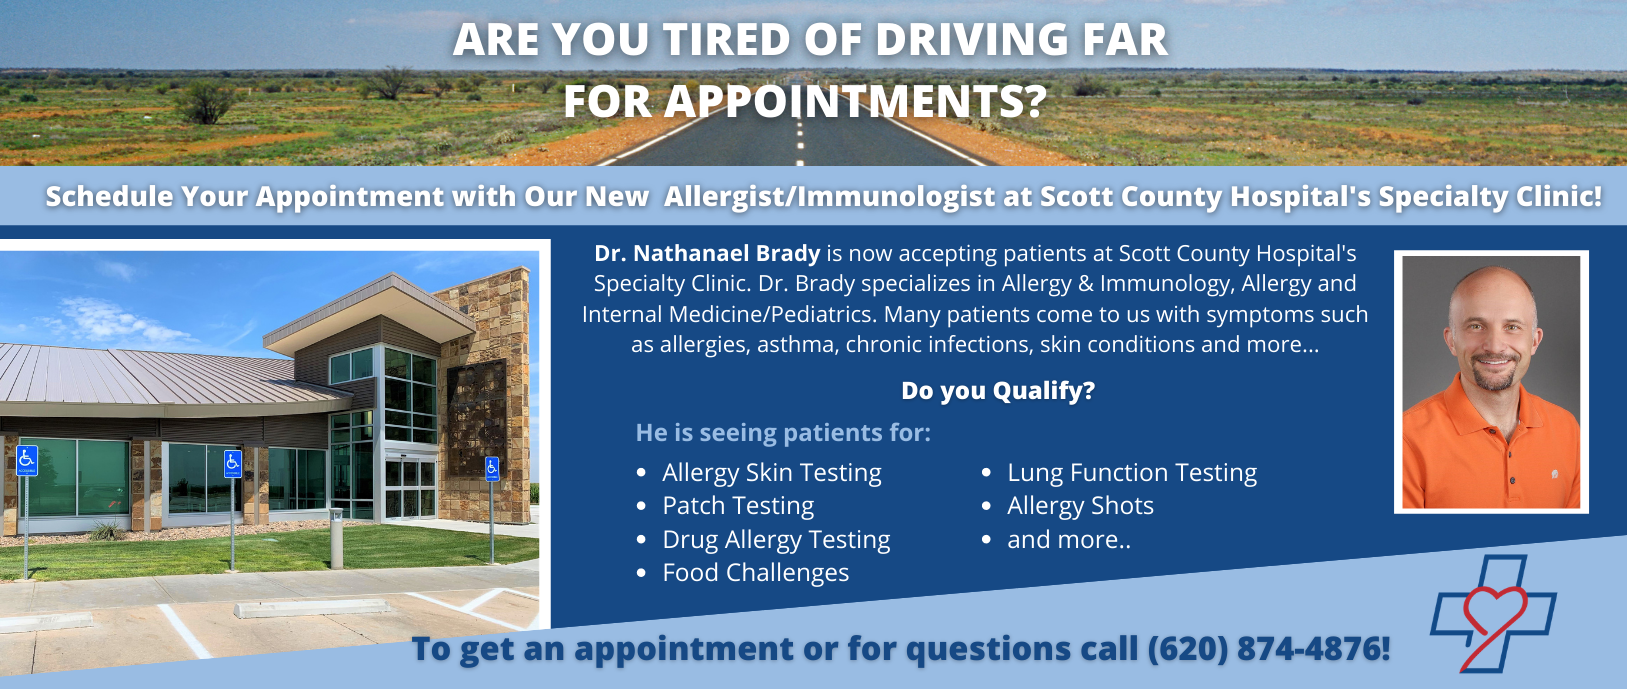 Are you Tired of driving far for appointments?